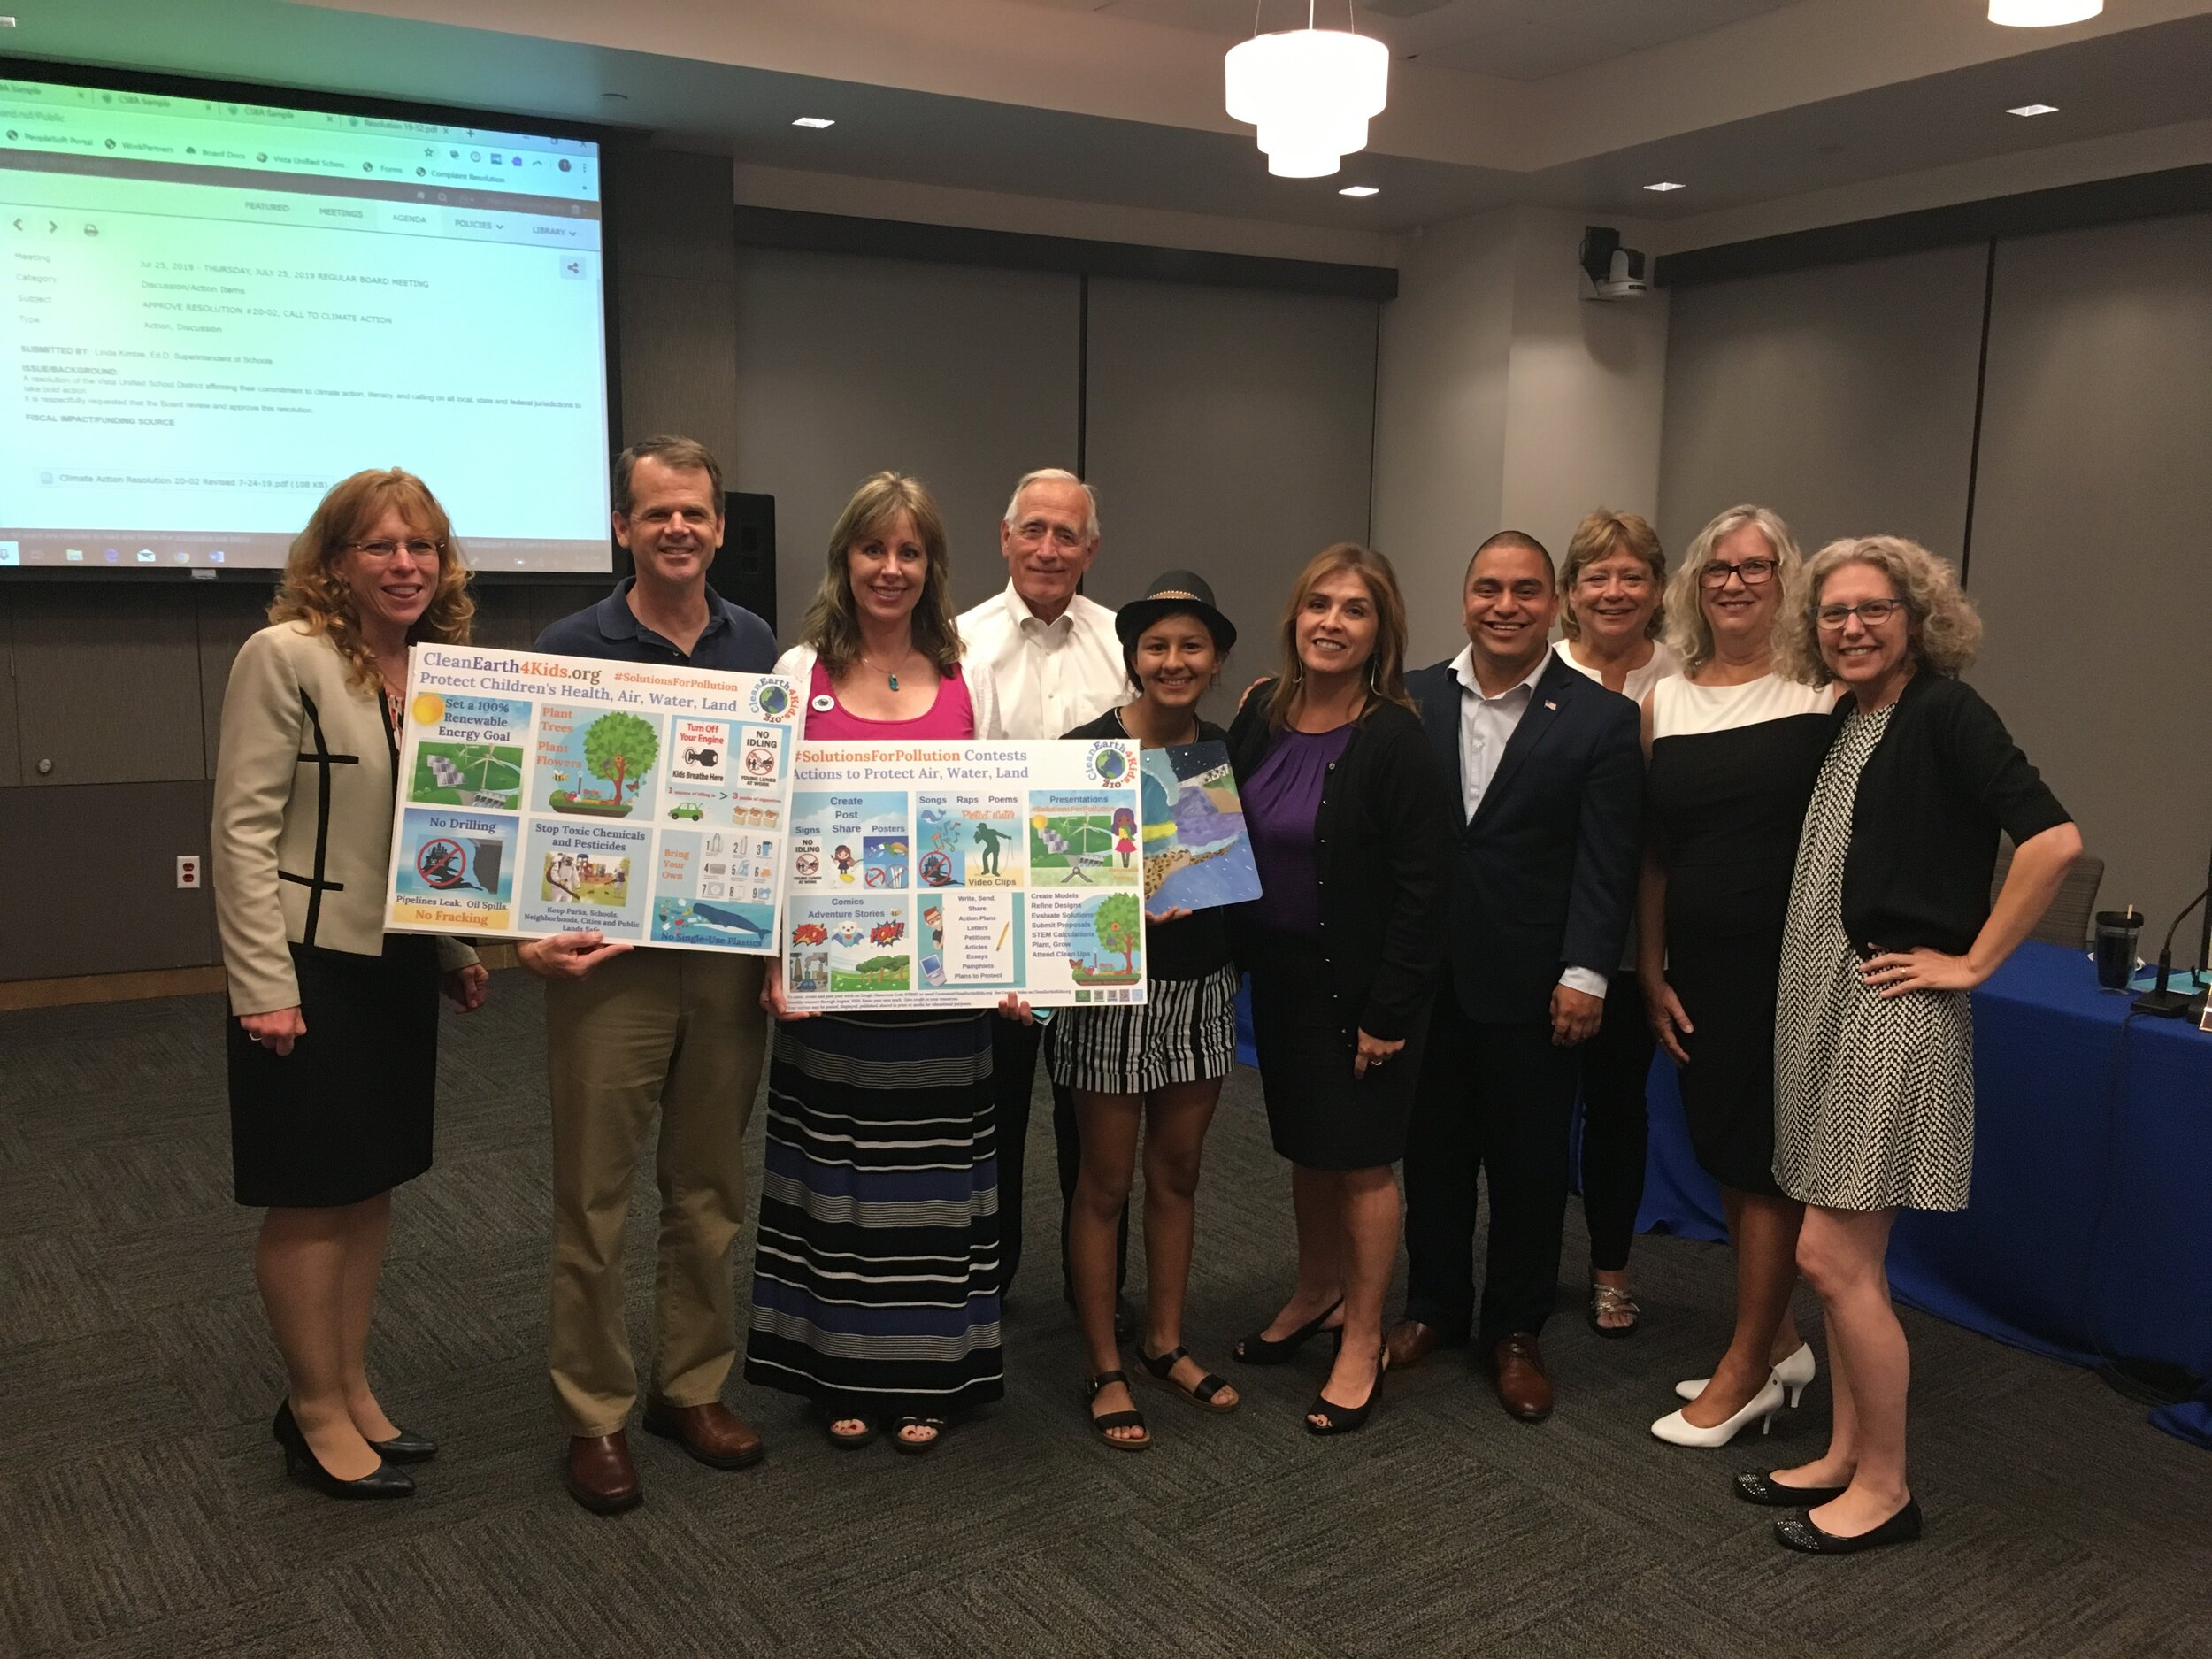 CleanEarth4Kids worked to get a Climate Action Resolution passed in Vista Unified